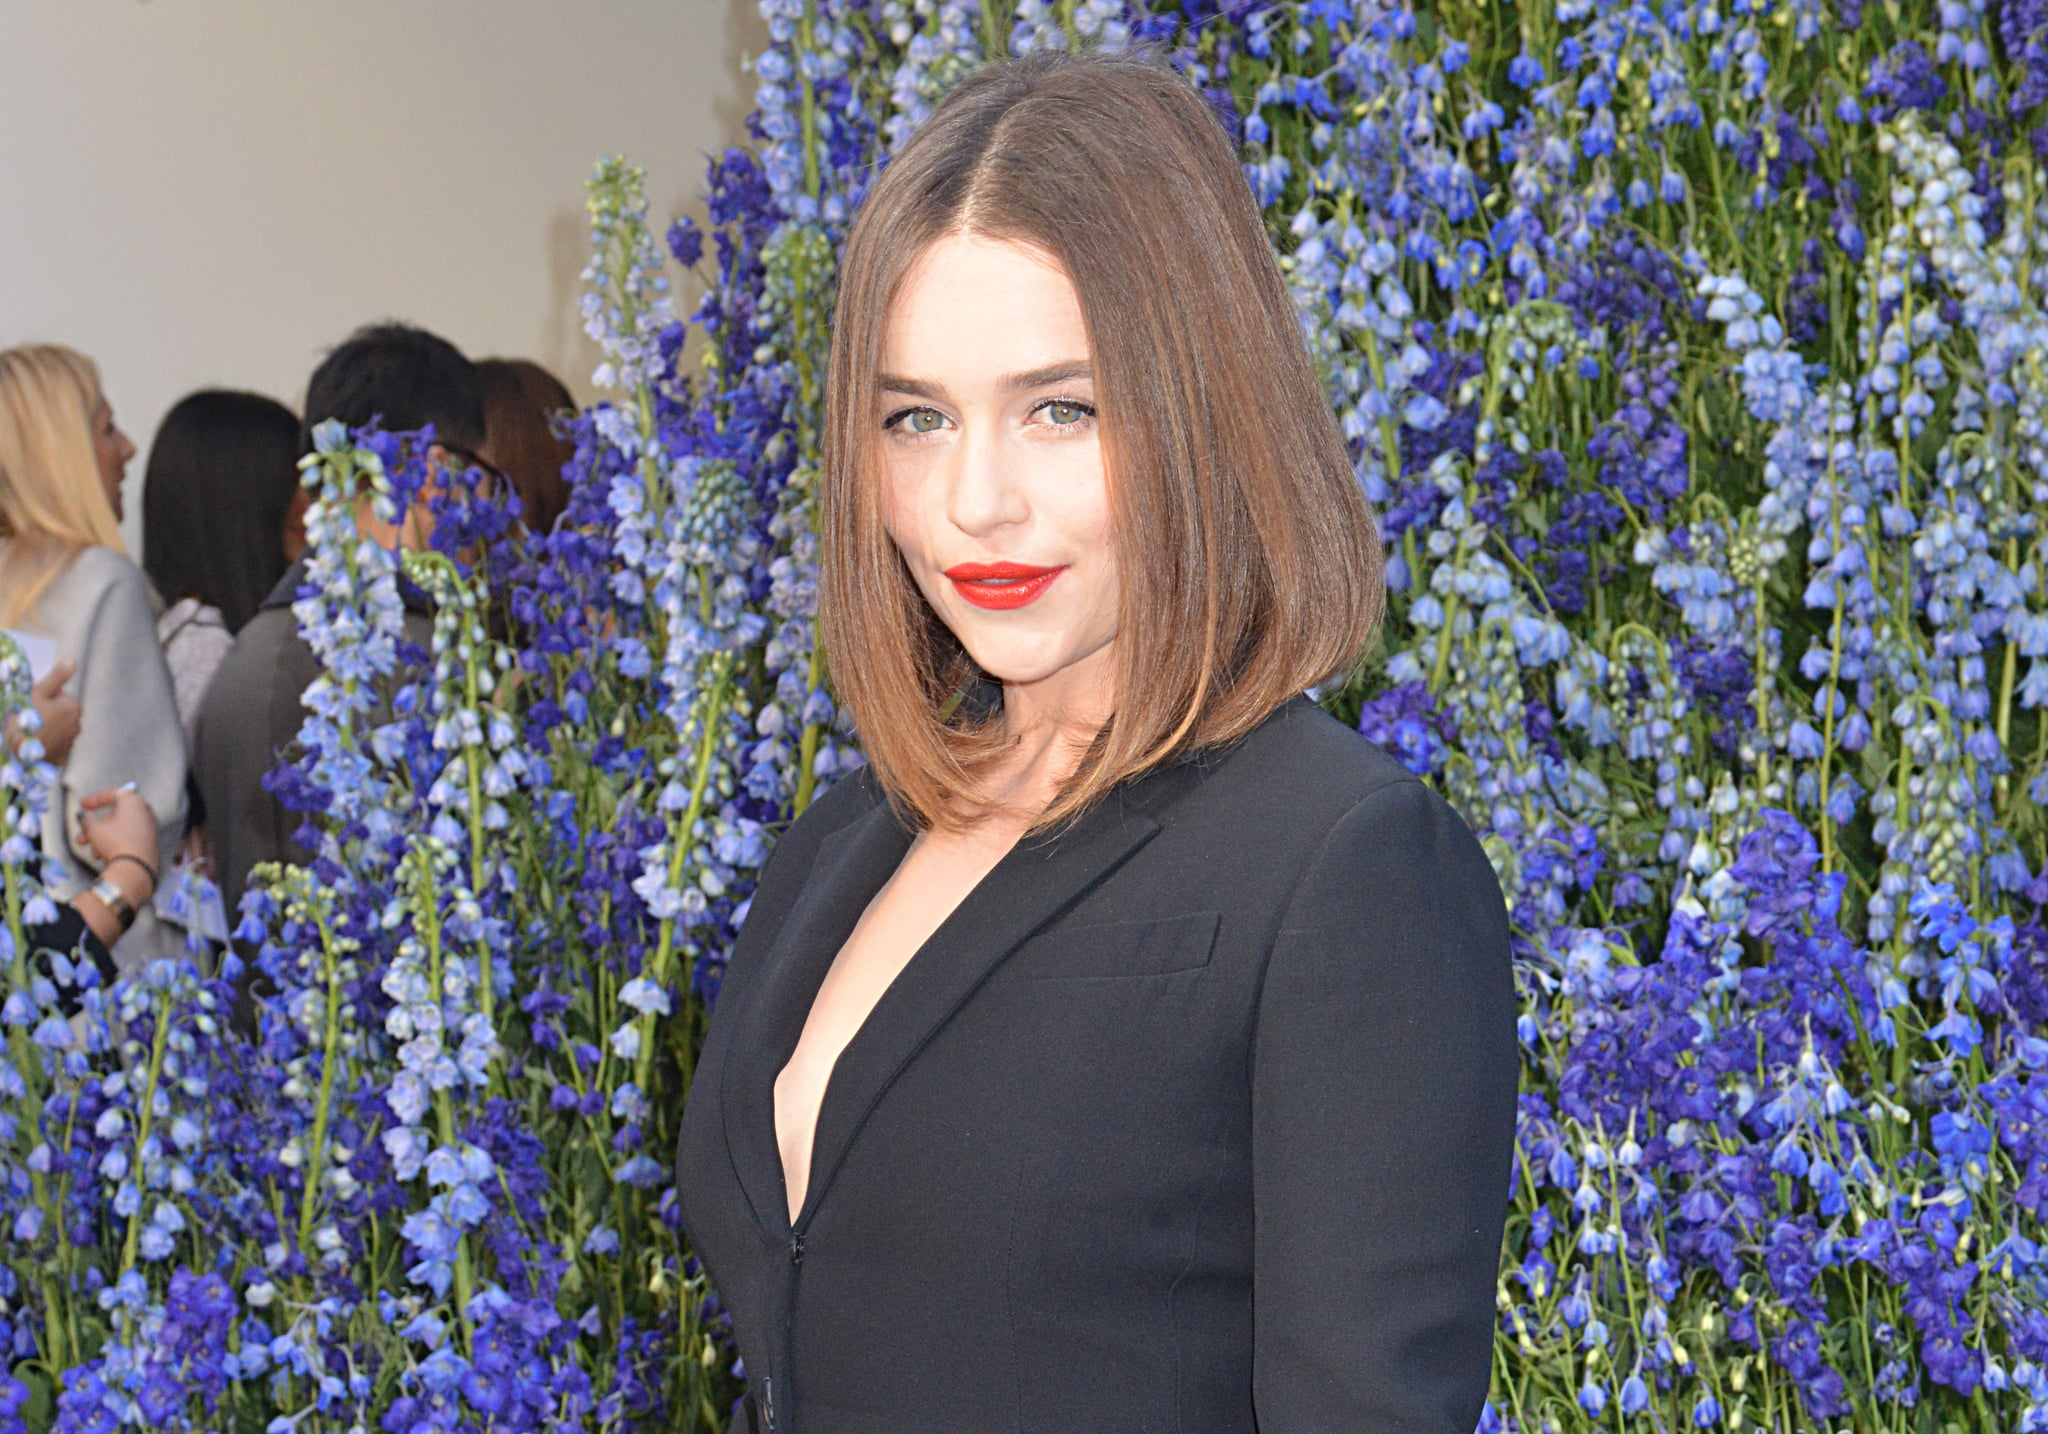 emilia clarke s essay for huffington post uk popsugar share this link